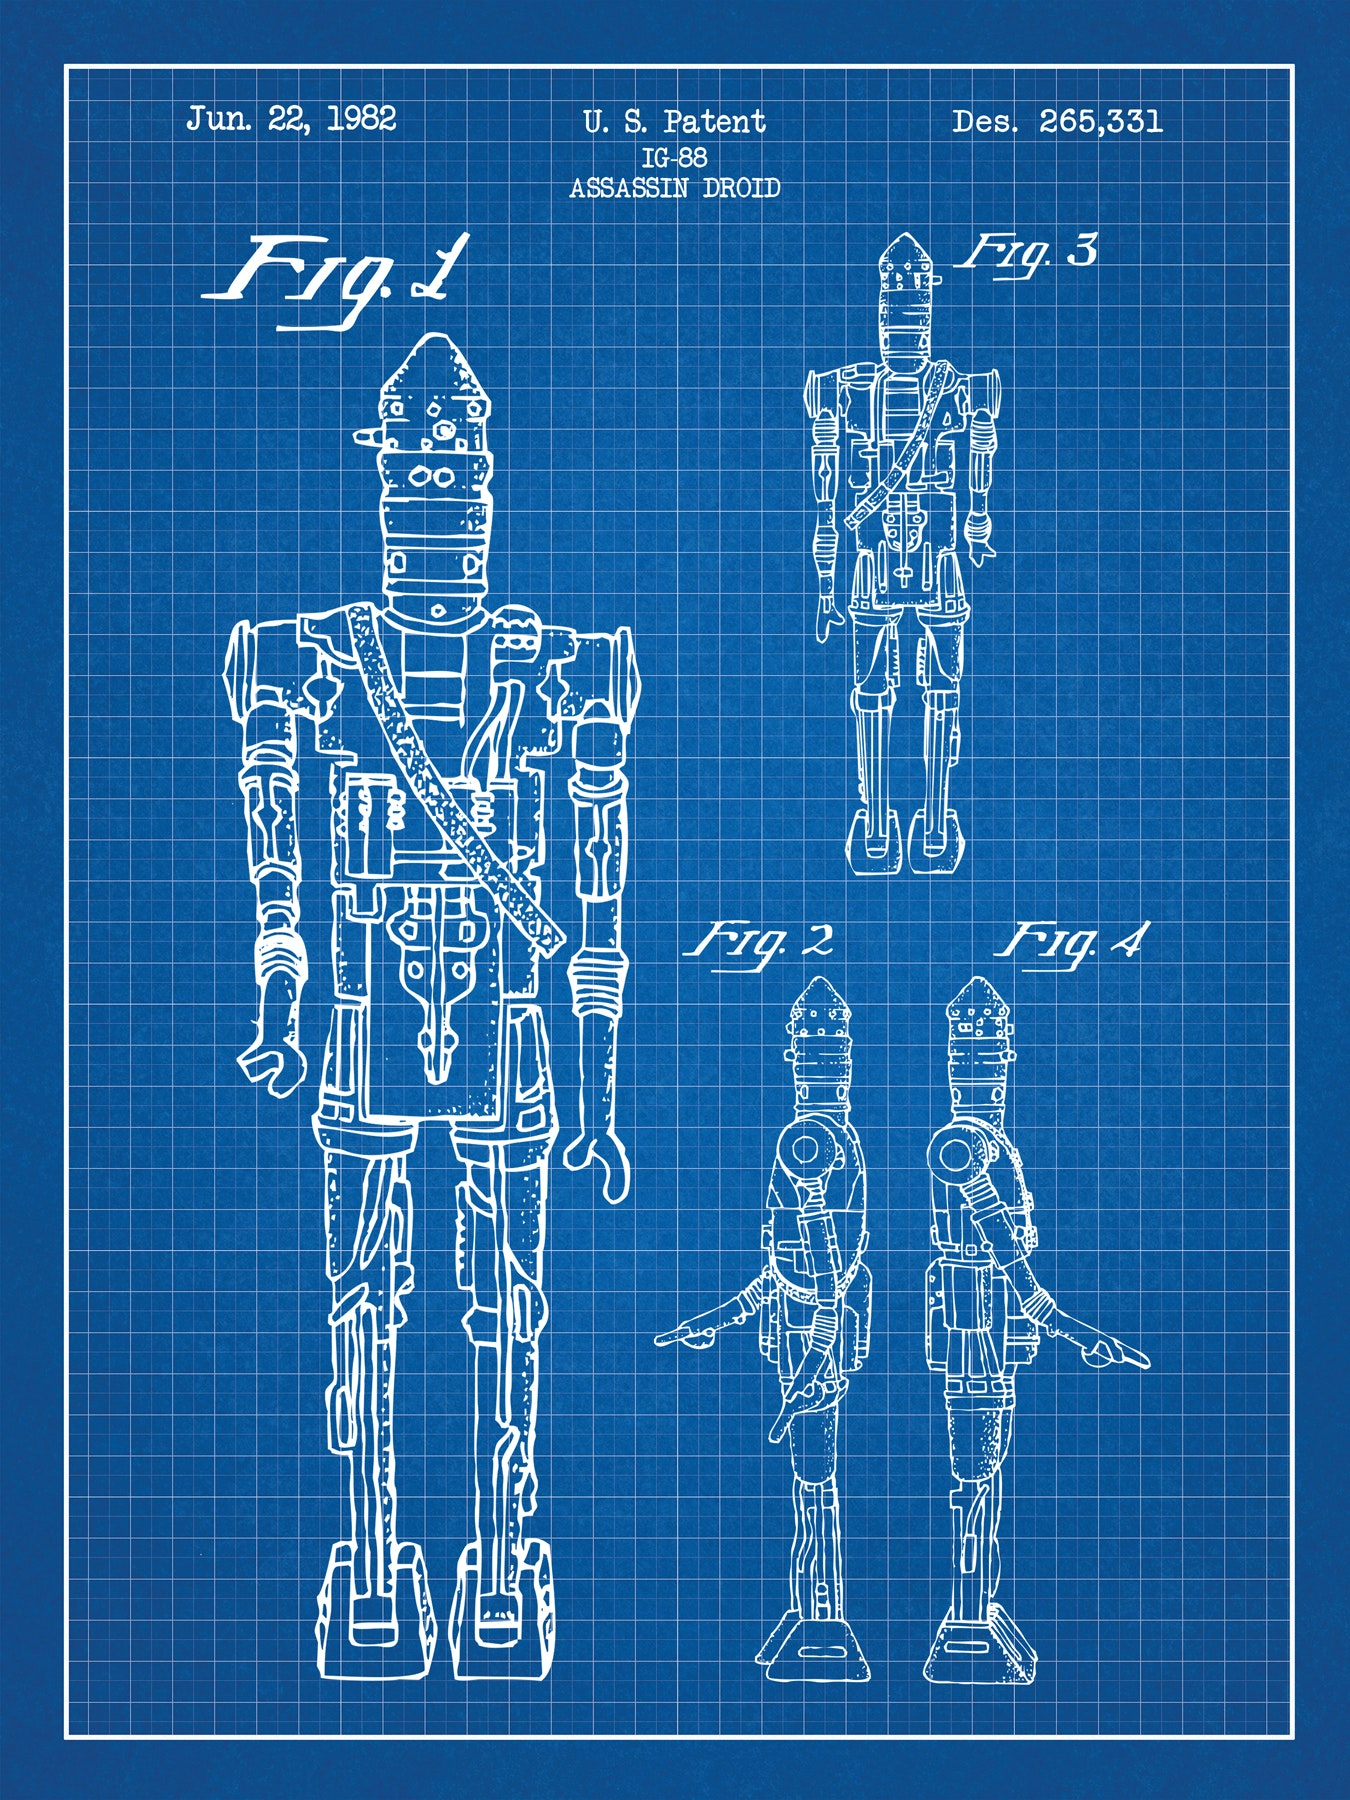 SP-SYFI-IG88-Droid-265,331-Blue-Grid-White-Ink-24-Inches